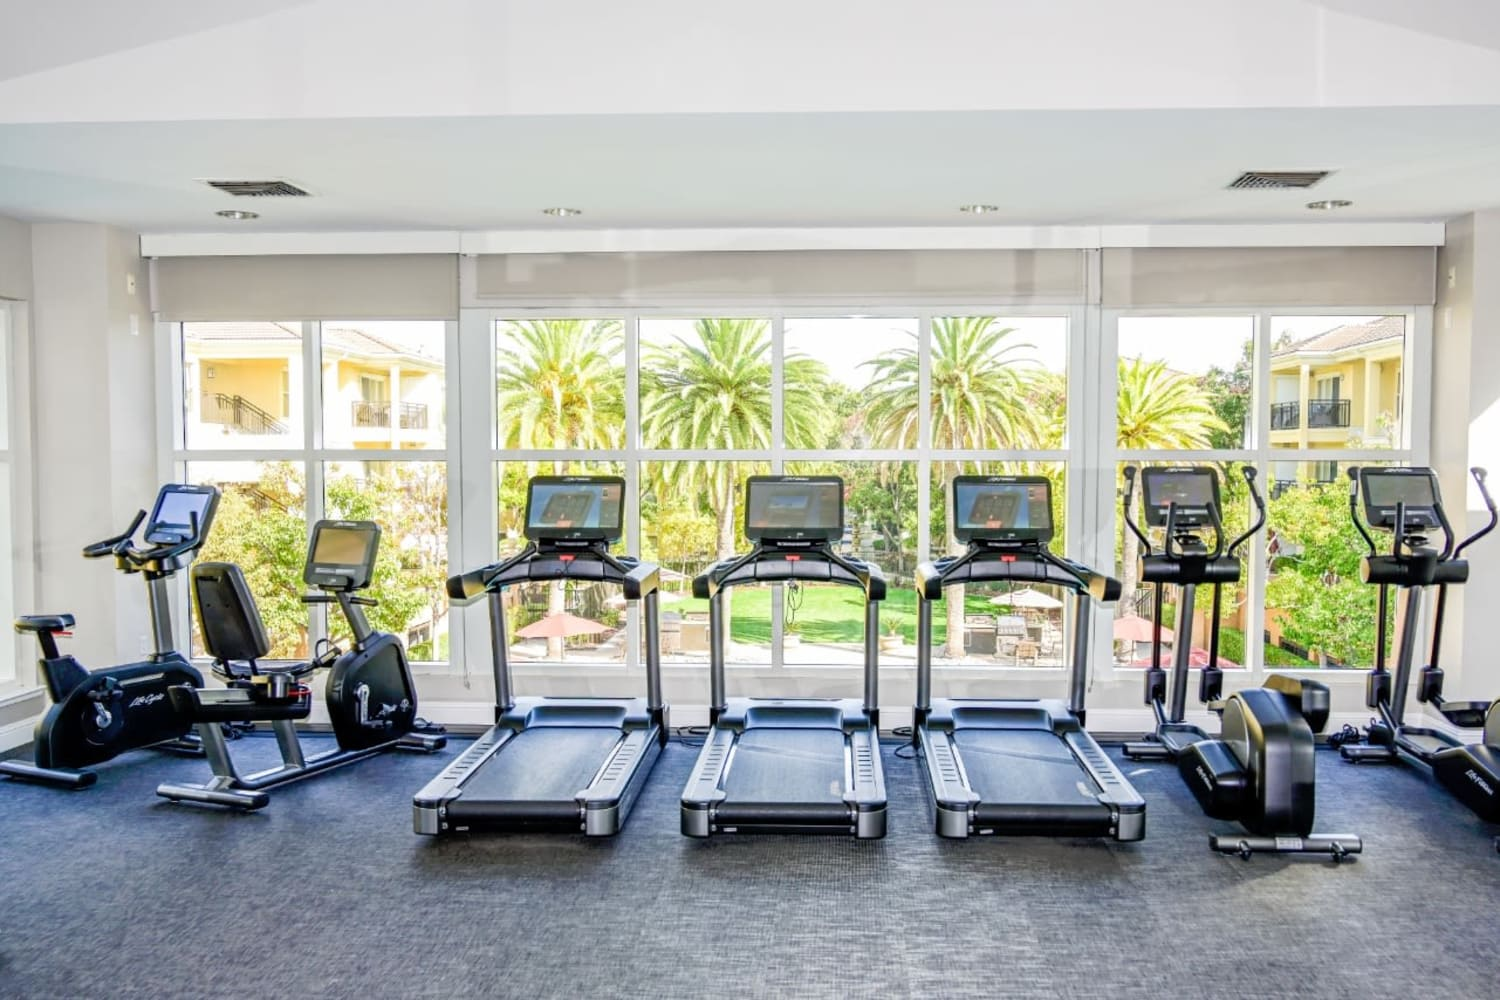 Fitness facility at The Carlyle in Santa Clara, California